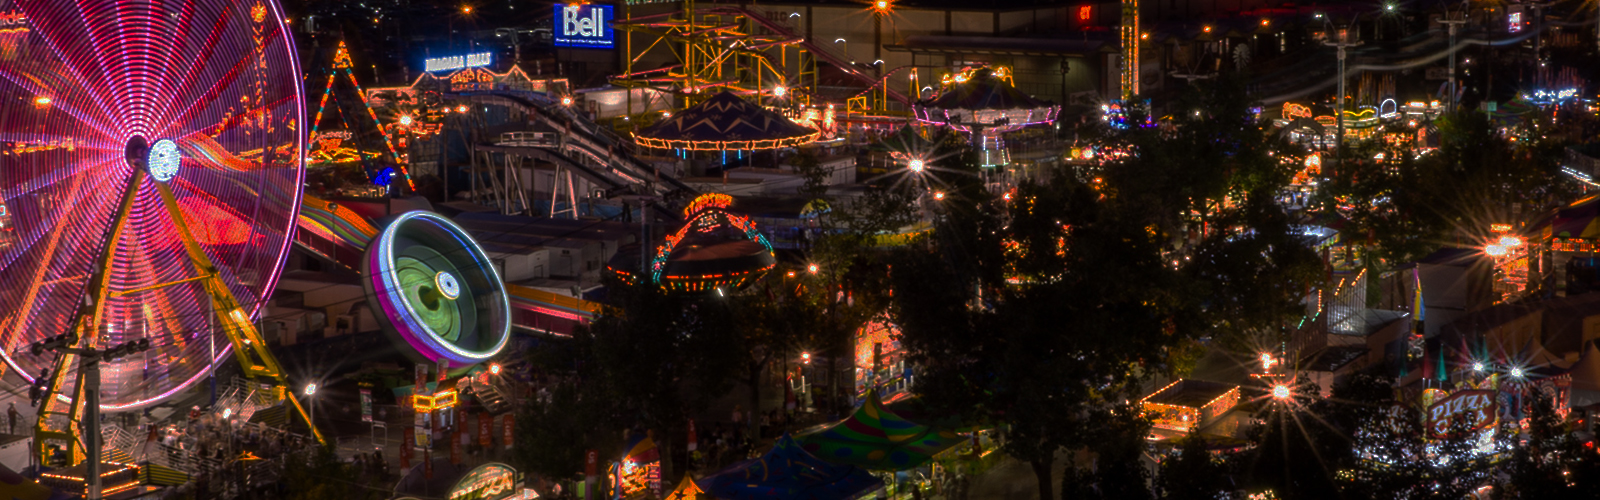 Attractions Calgary Stampede July 5 14 2019